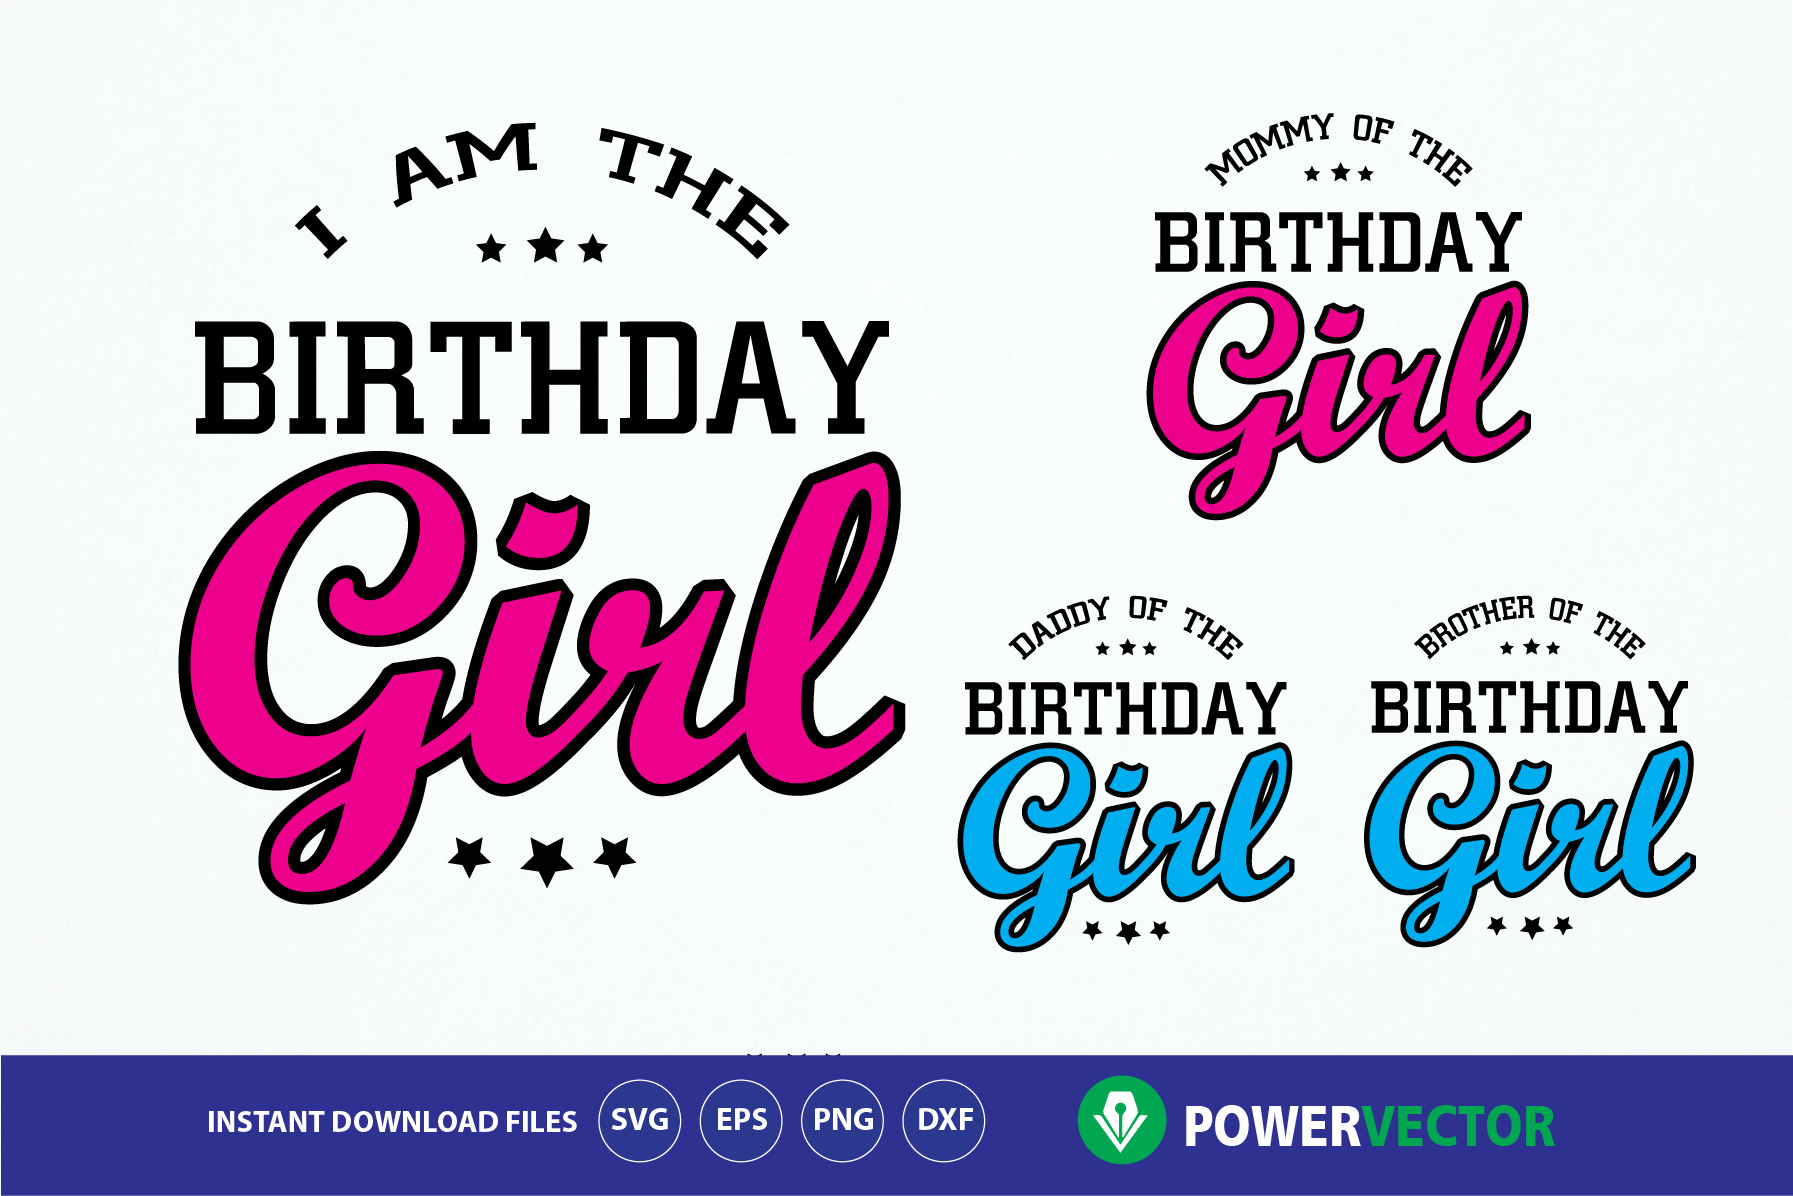 Daddy Mommy Sister of the Birthday Girl. Family Birthday Celebration T shirt Design SVG, Eps, Cricut, Silhouette Files example image 1